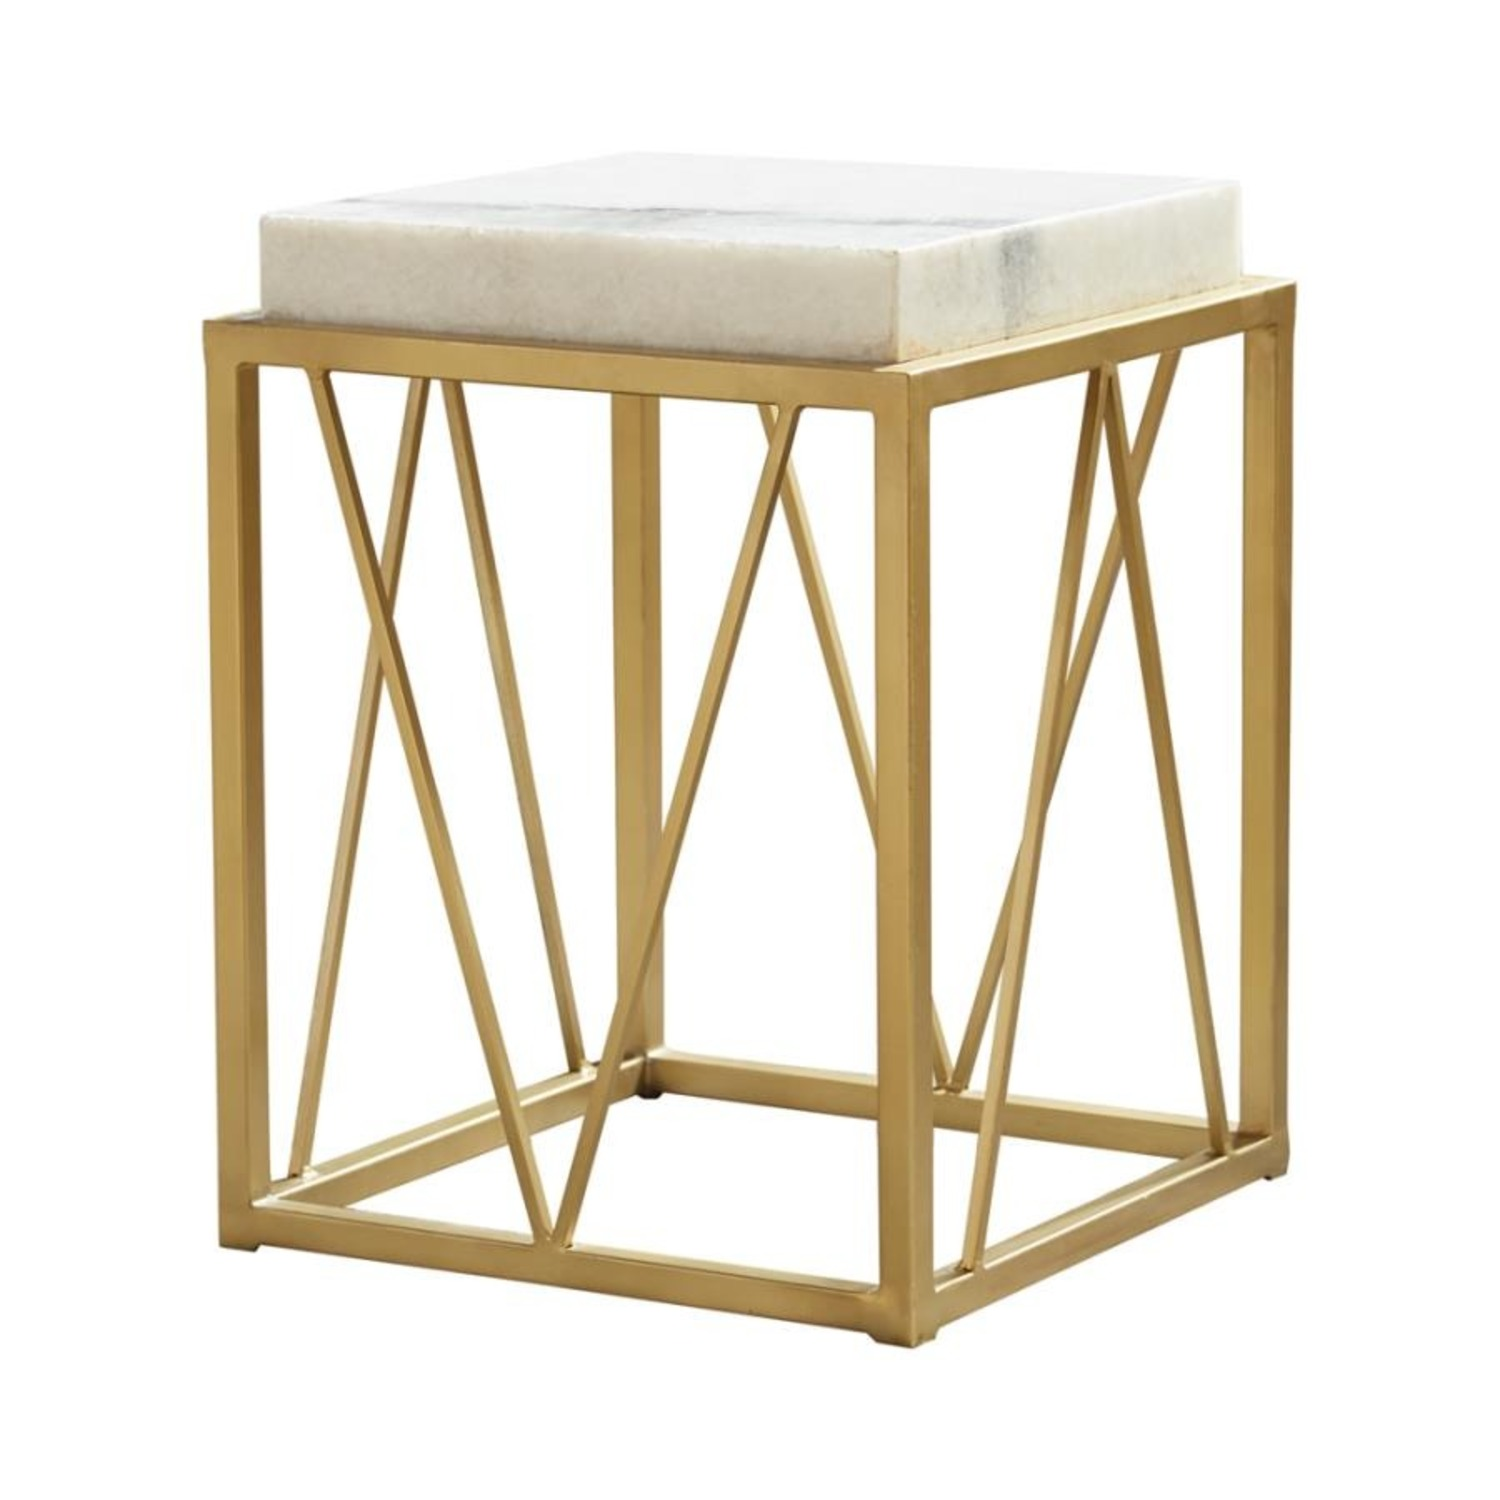 Accent Table In White Marble Finish And Gold Base - image-1